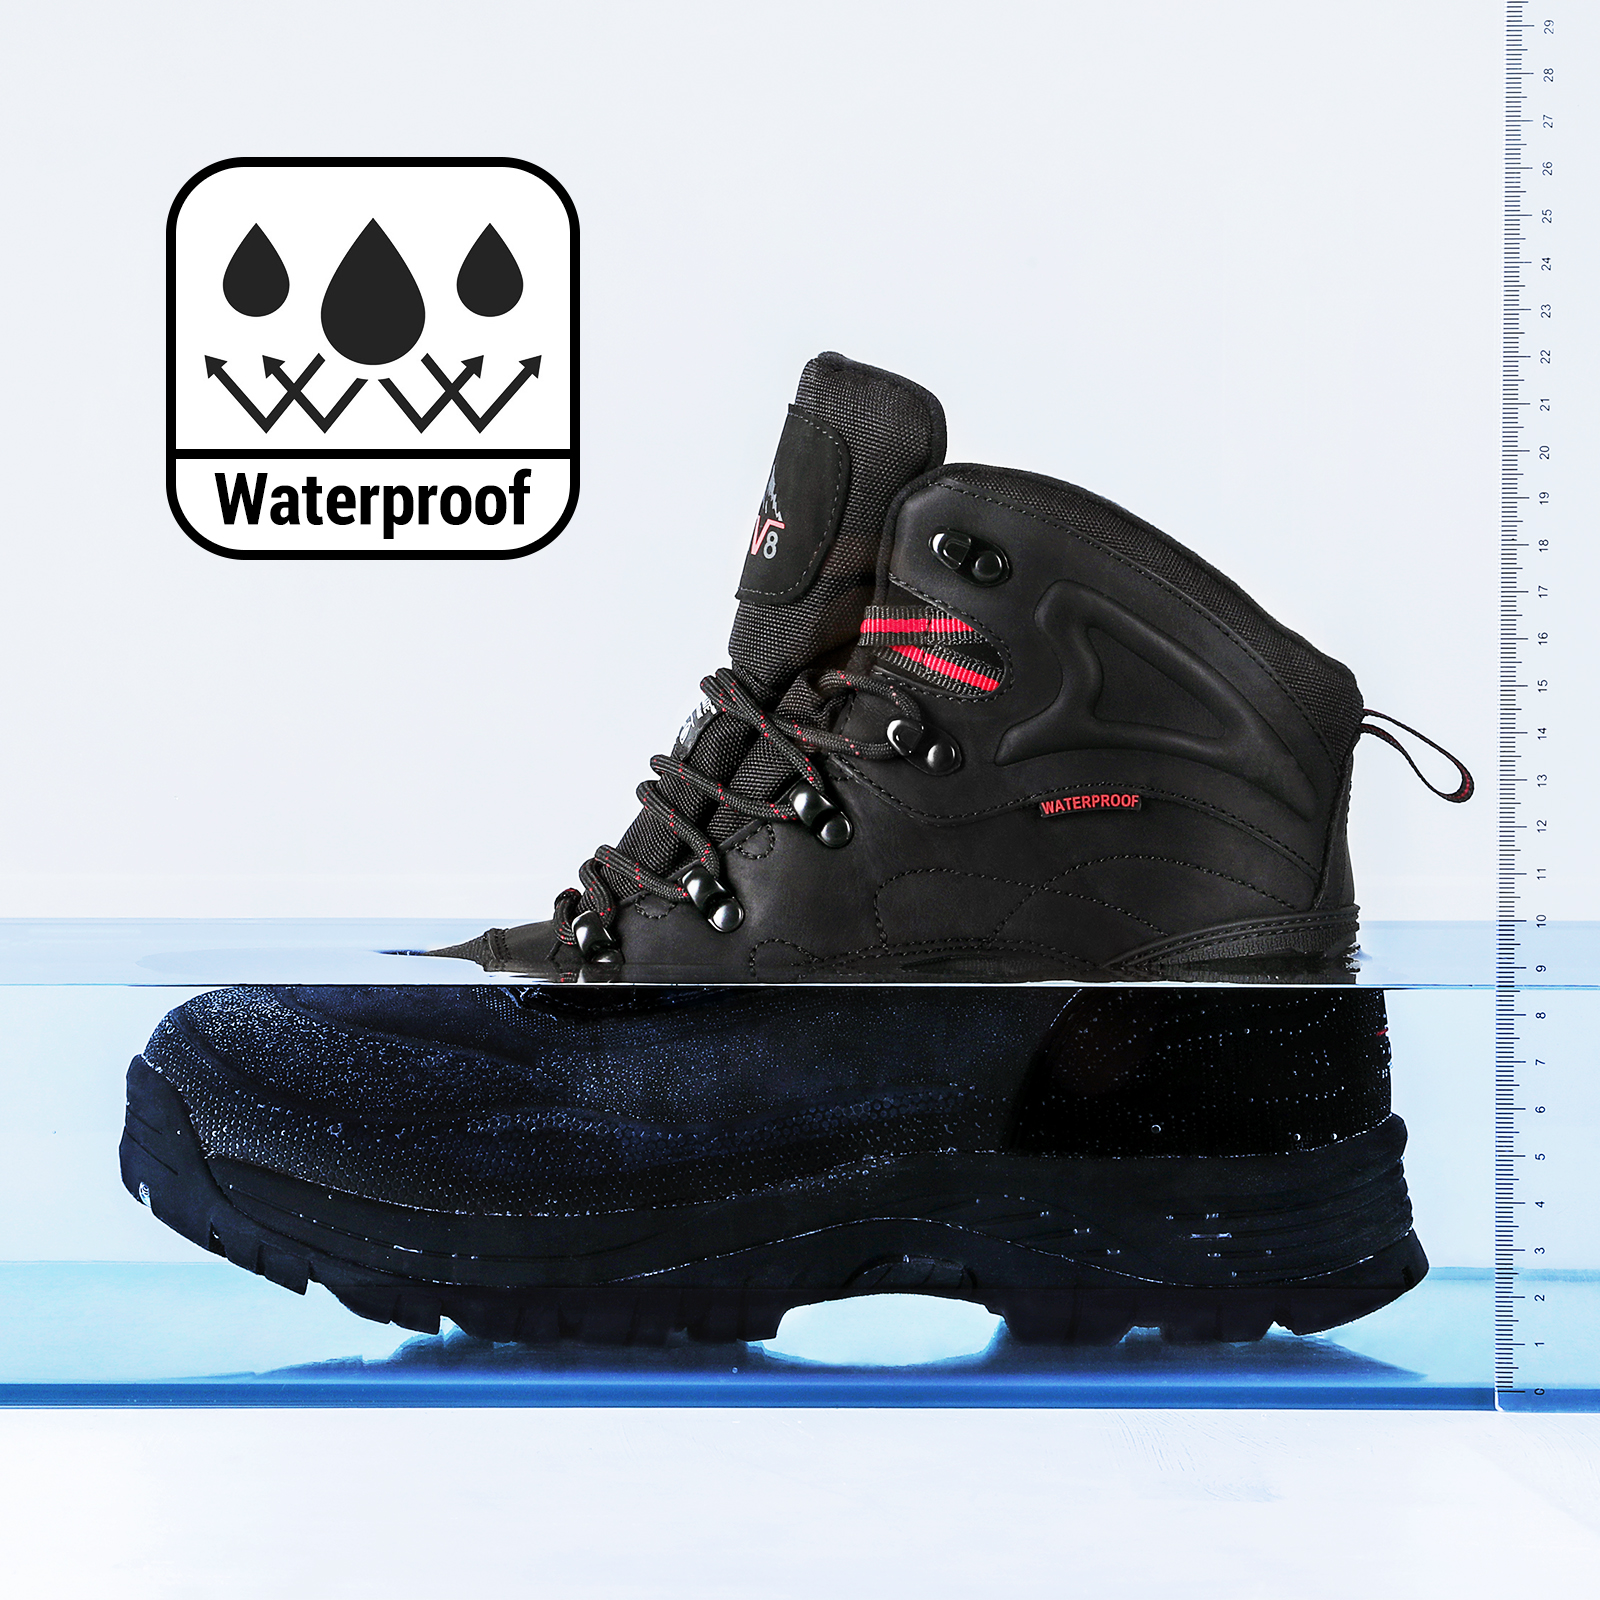 NORTIV 8 Mens 170410 Insulated Waterproof Construction Hiking Winter Snow Boots